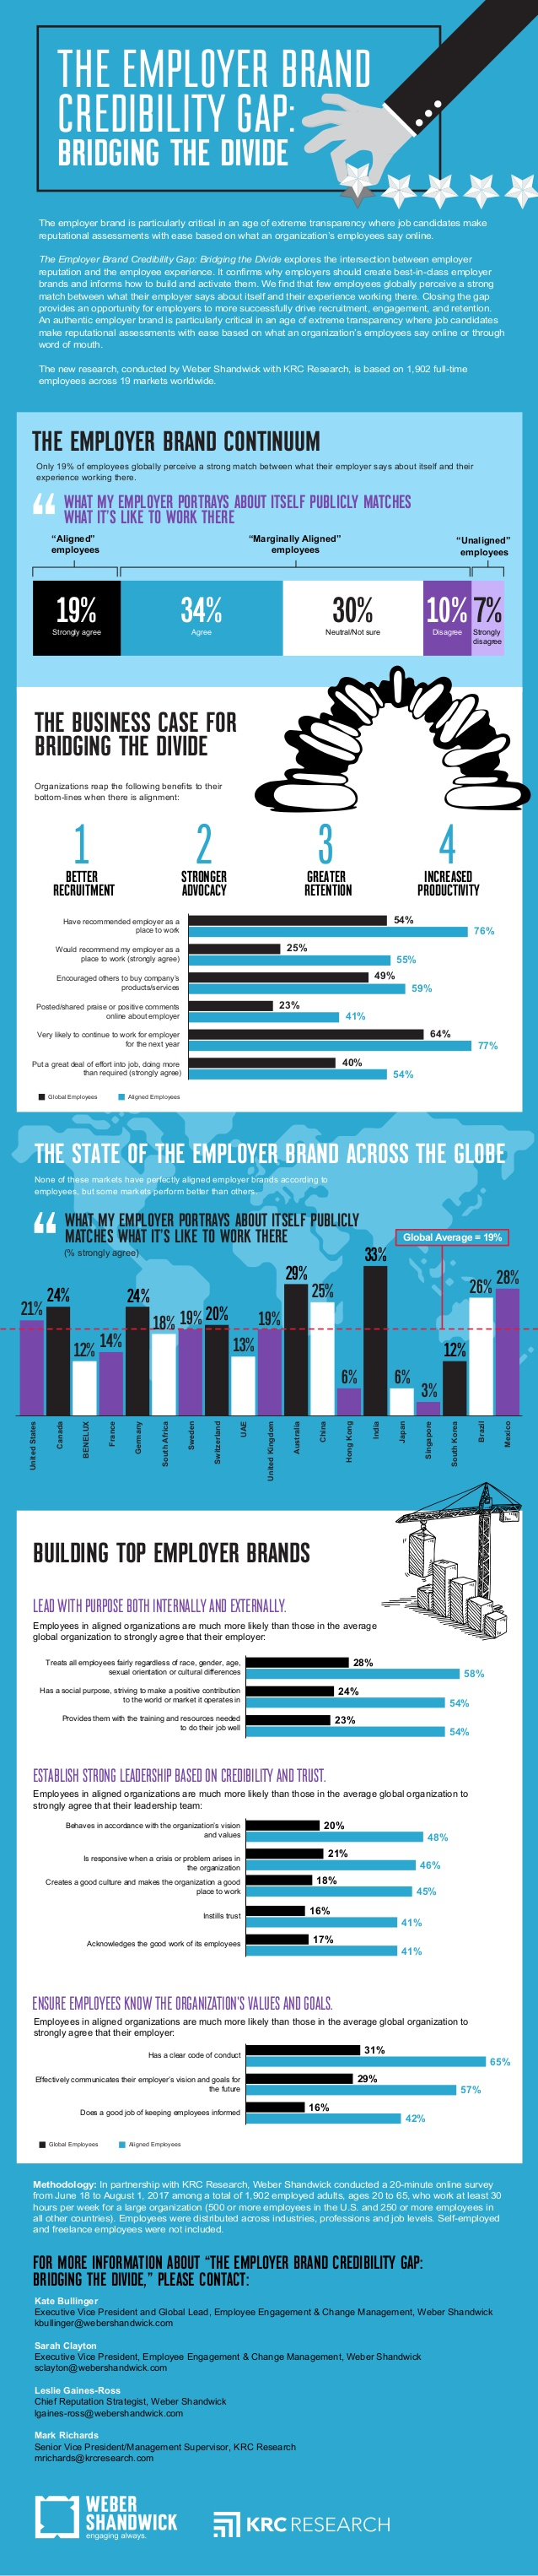 employer-brand-credibility-gap-infographic-1-638